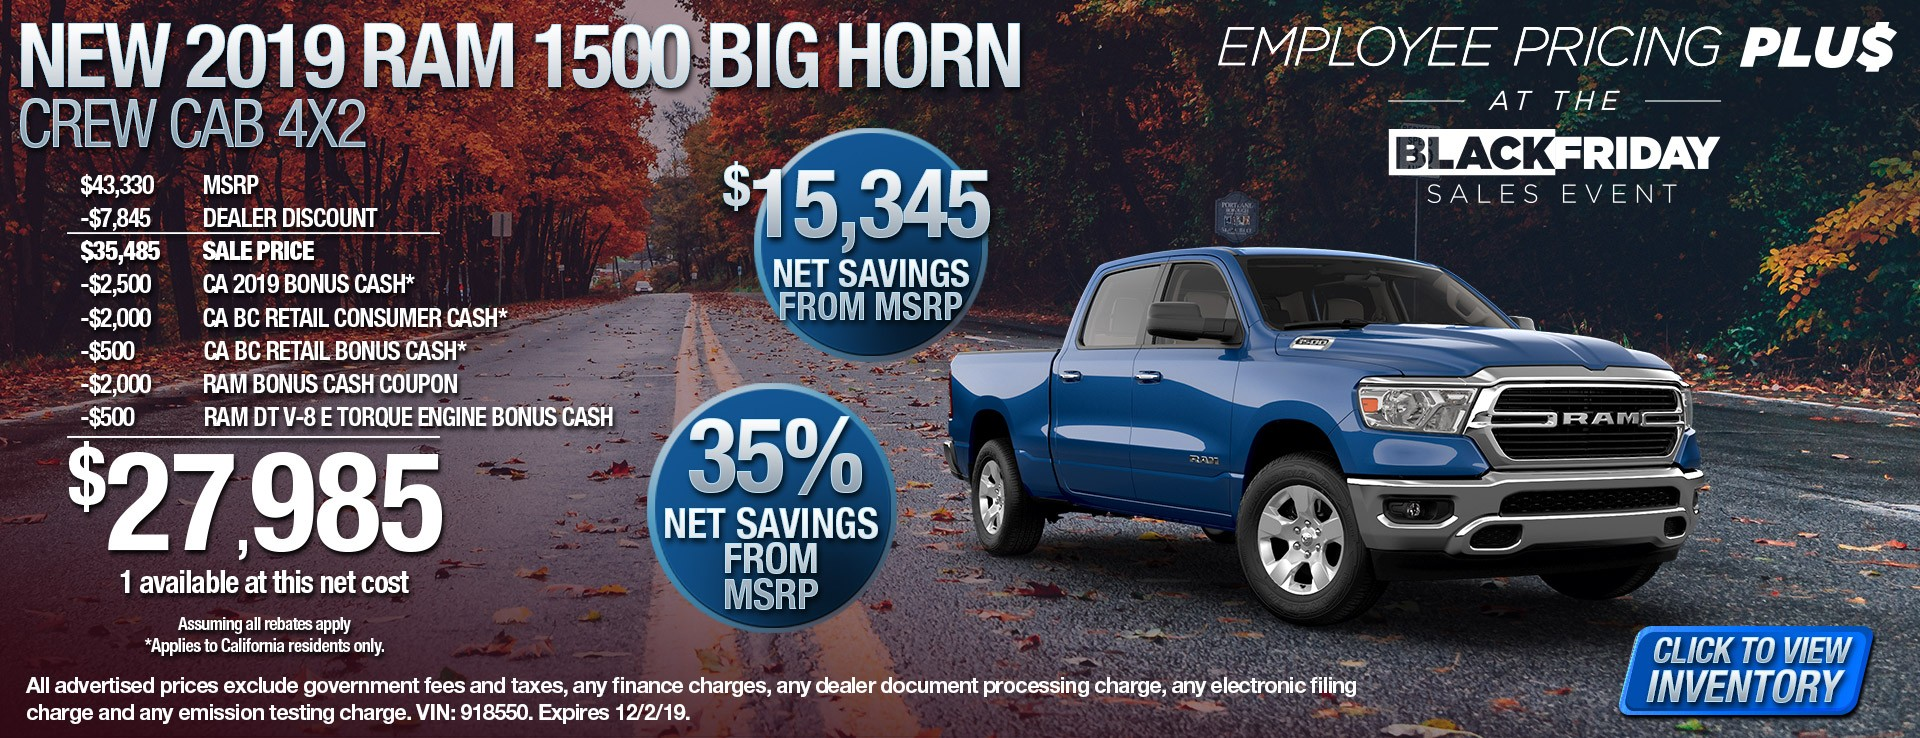 2019 Ram 1500 Big Horn - $15345 Net Savings from MSRP